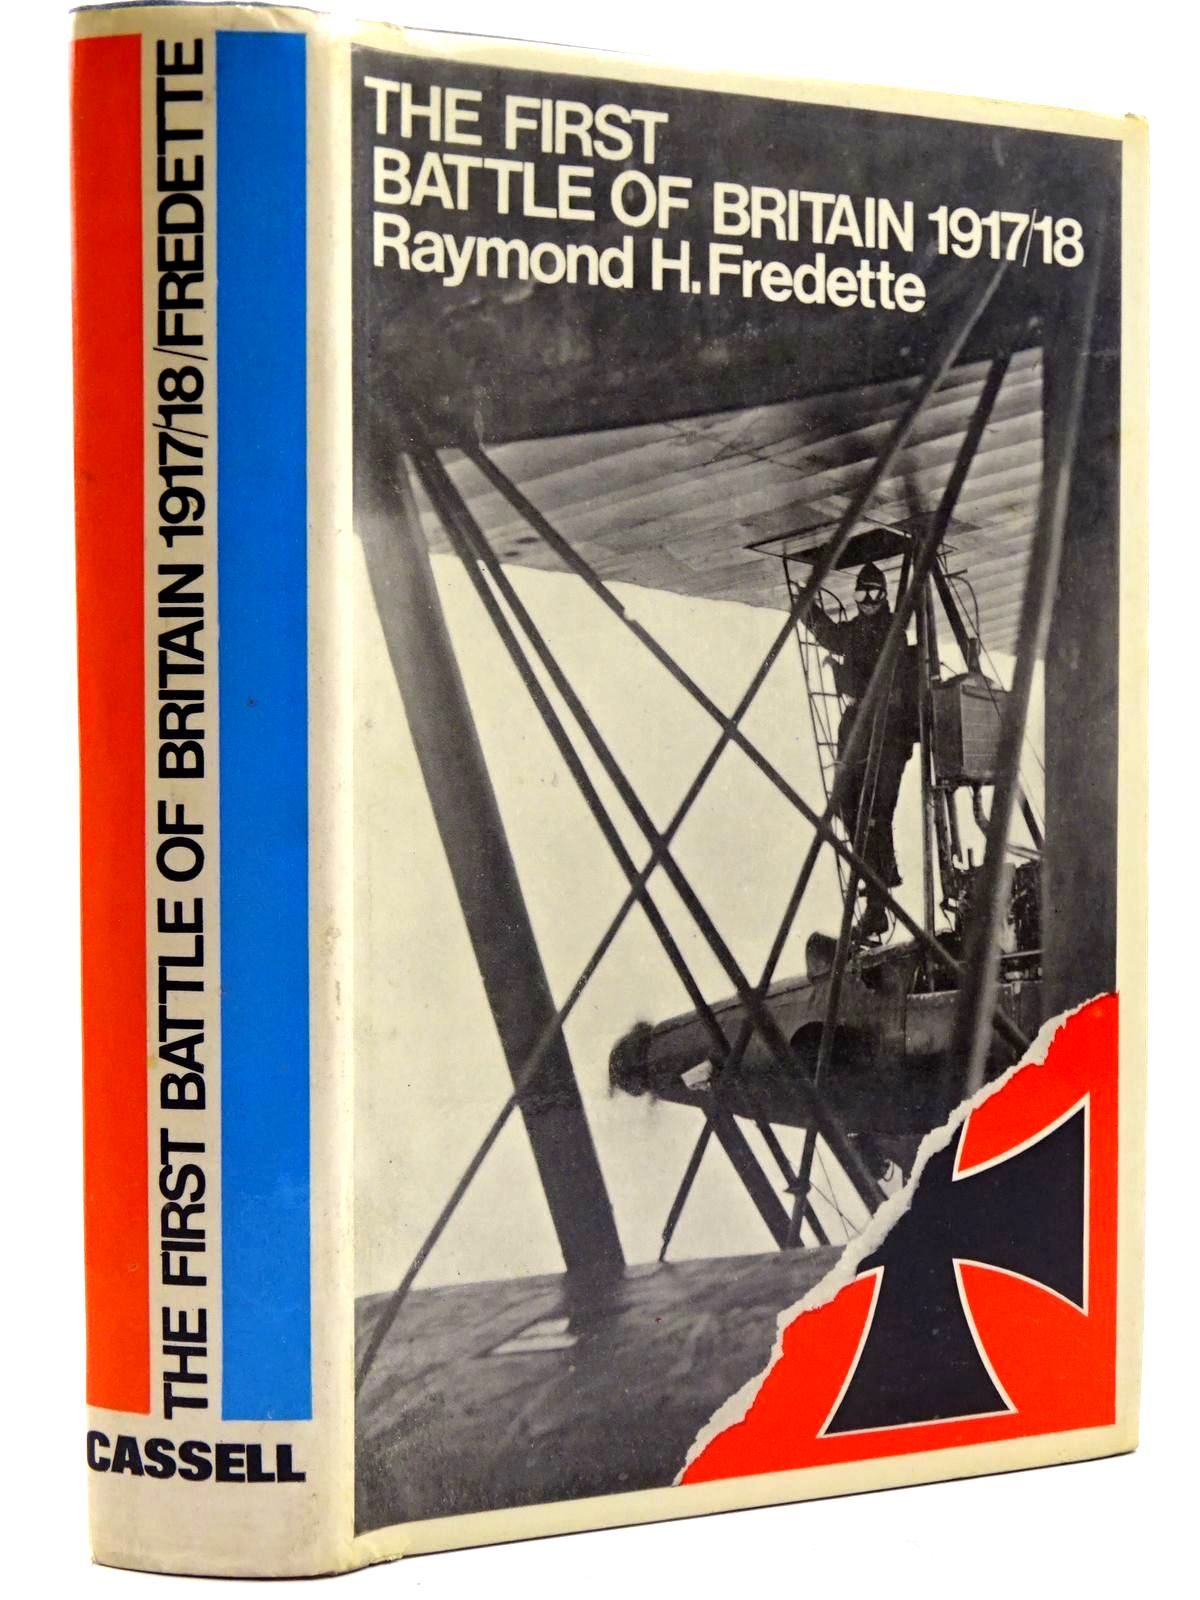 Photo of THE FIRST BATTLE OF BRITAIN 1917-1918 written by Fredette, Raymond H. published by Cassell (STOCK CODE: 2131464)  for sale by Stella & Rose's Books